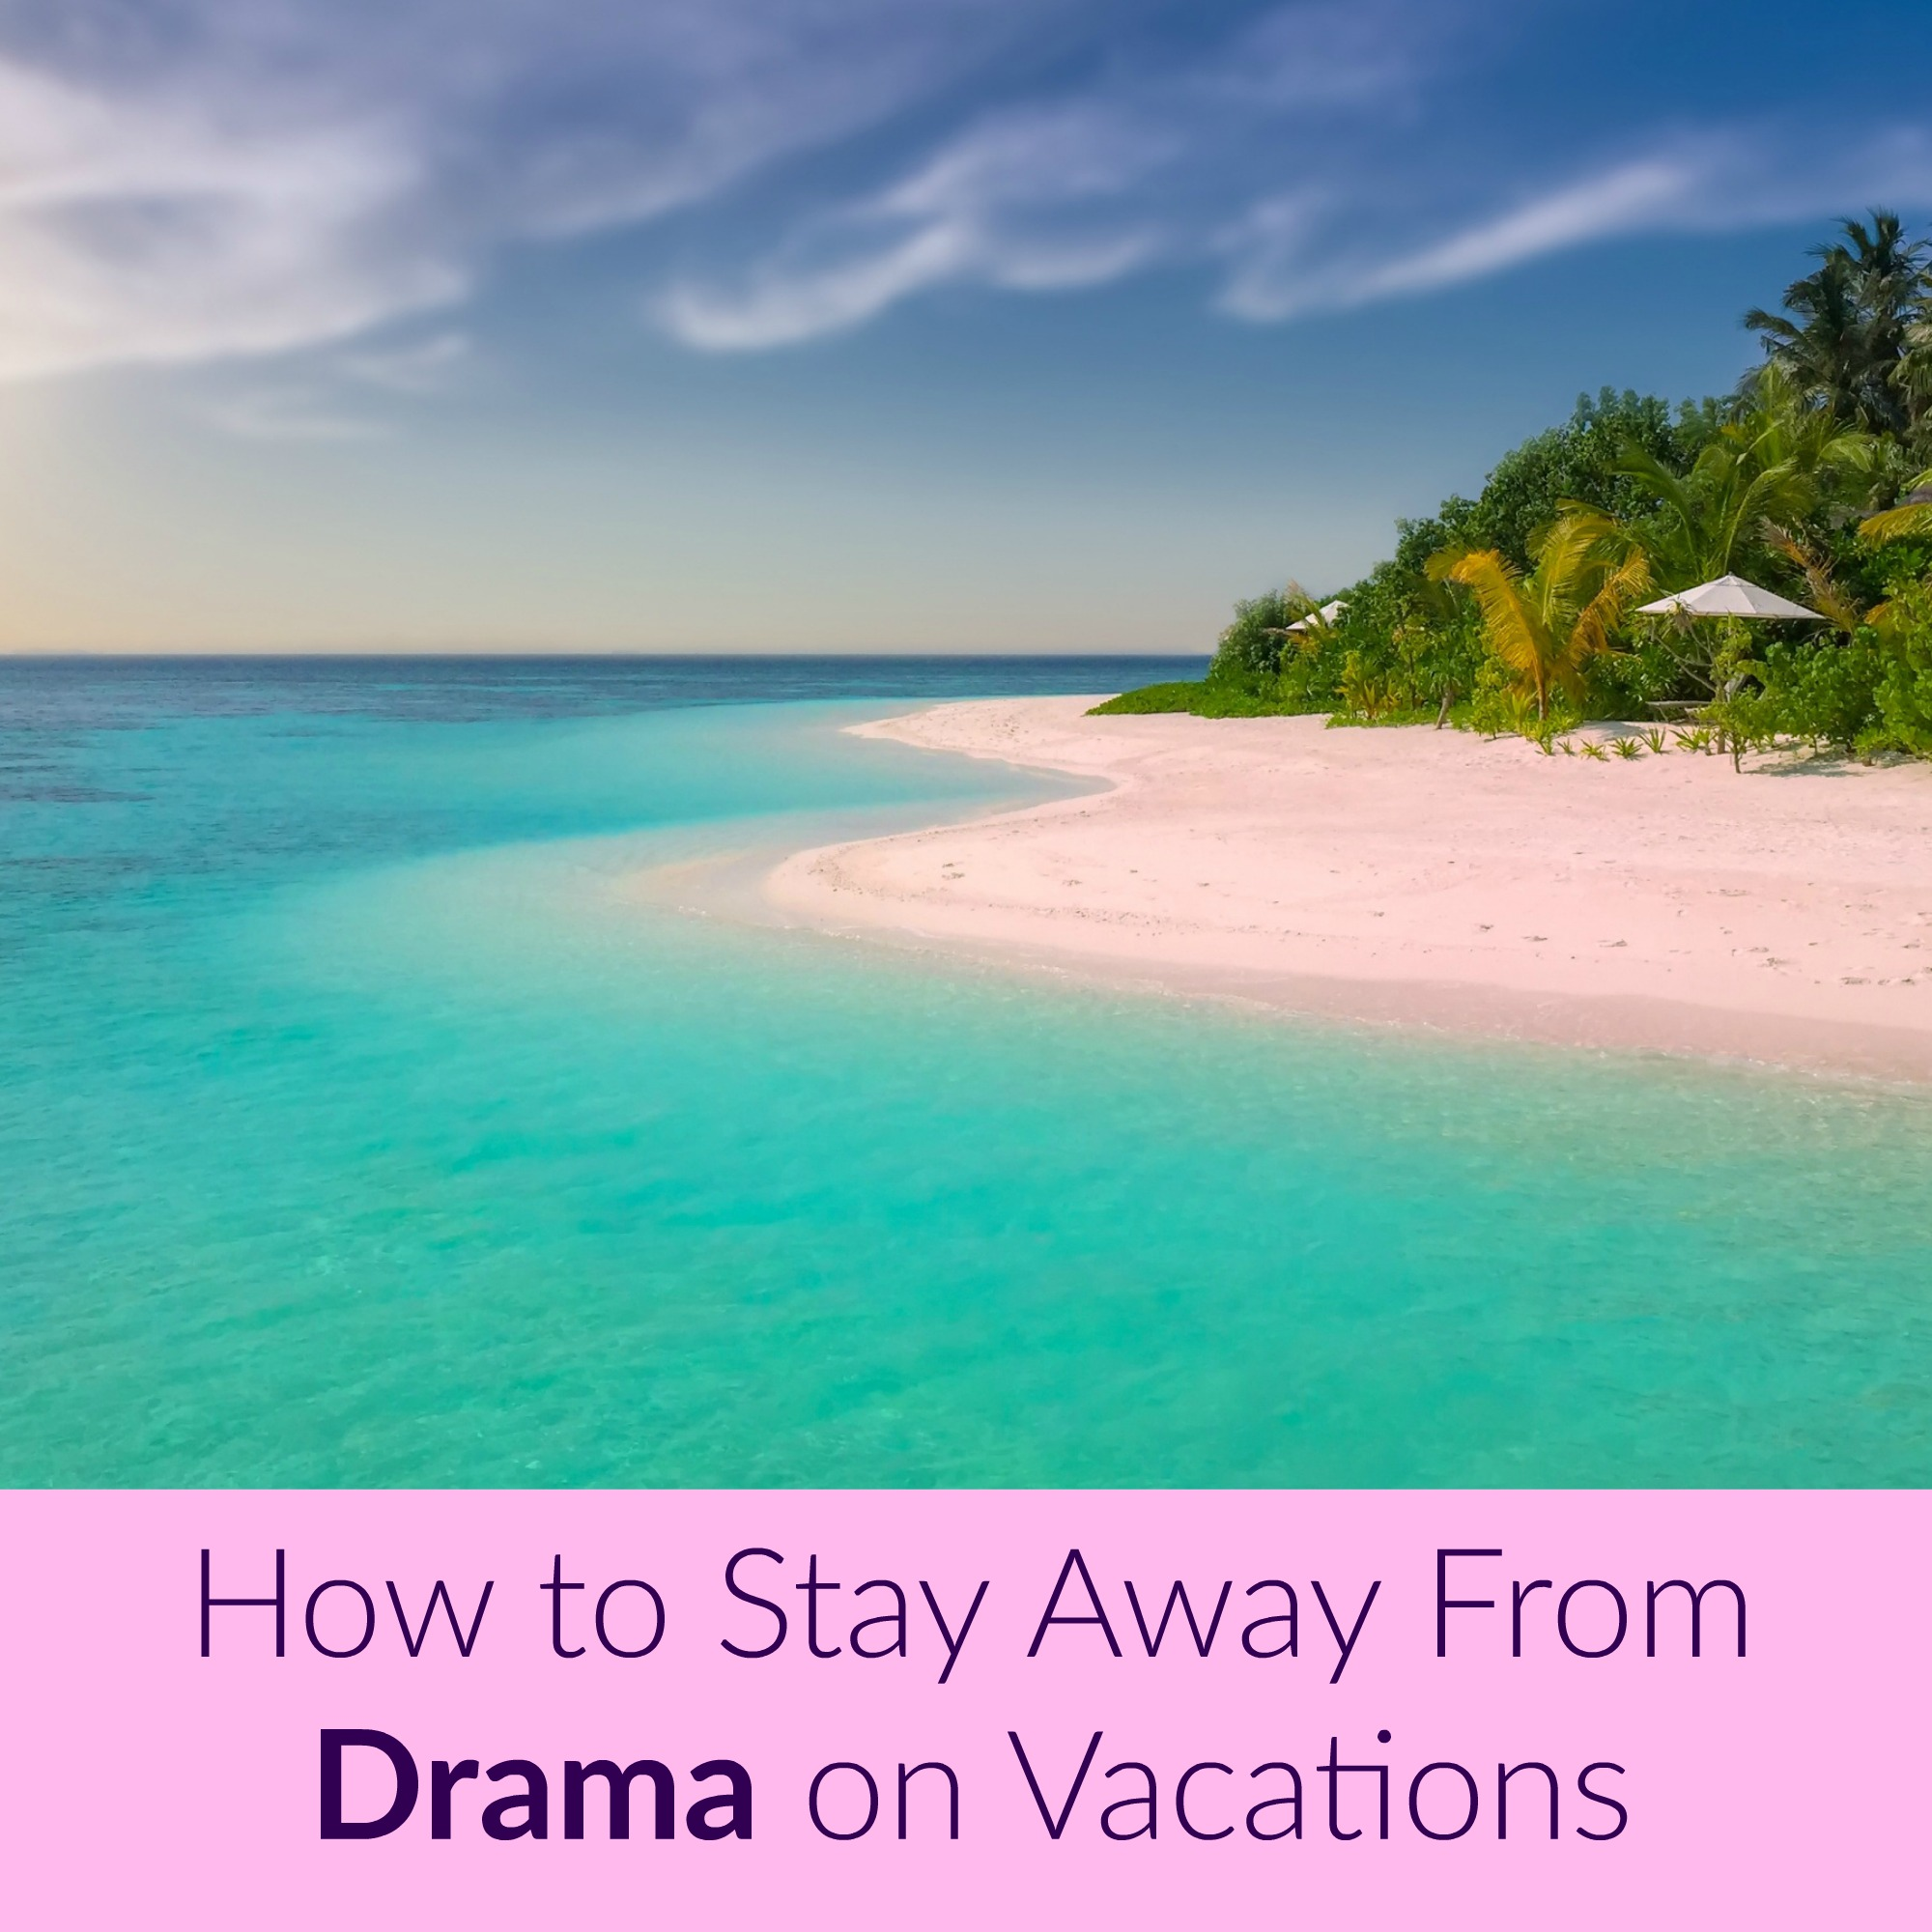 How to Stay Away From Drama on Vacations